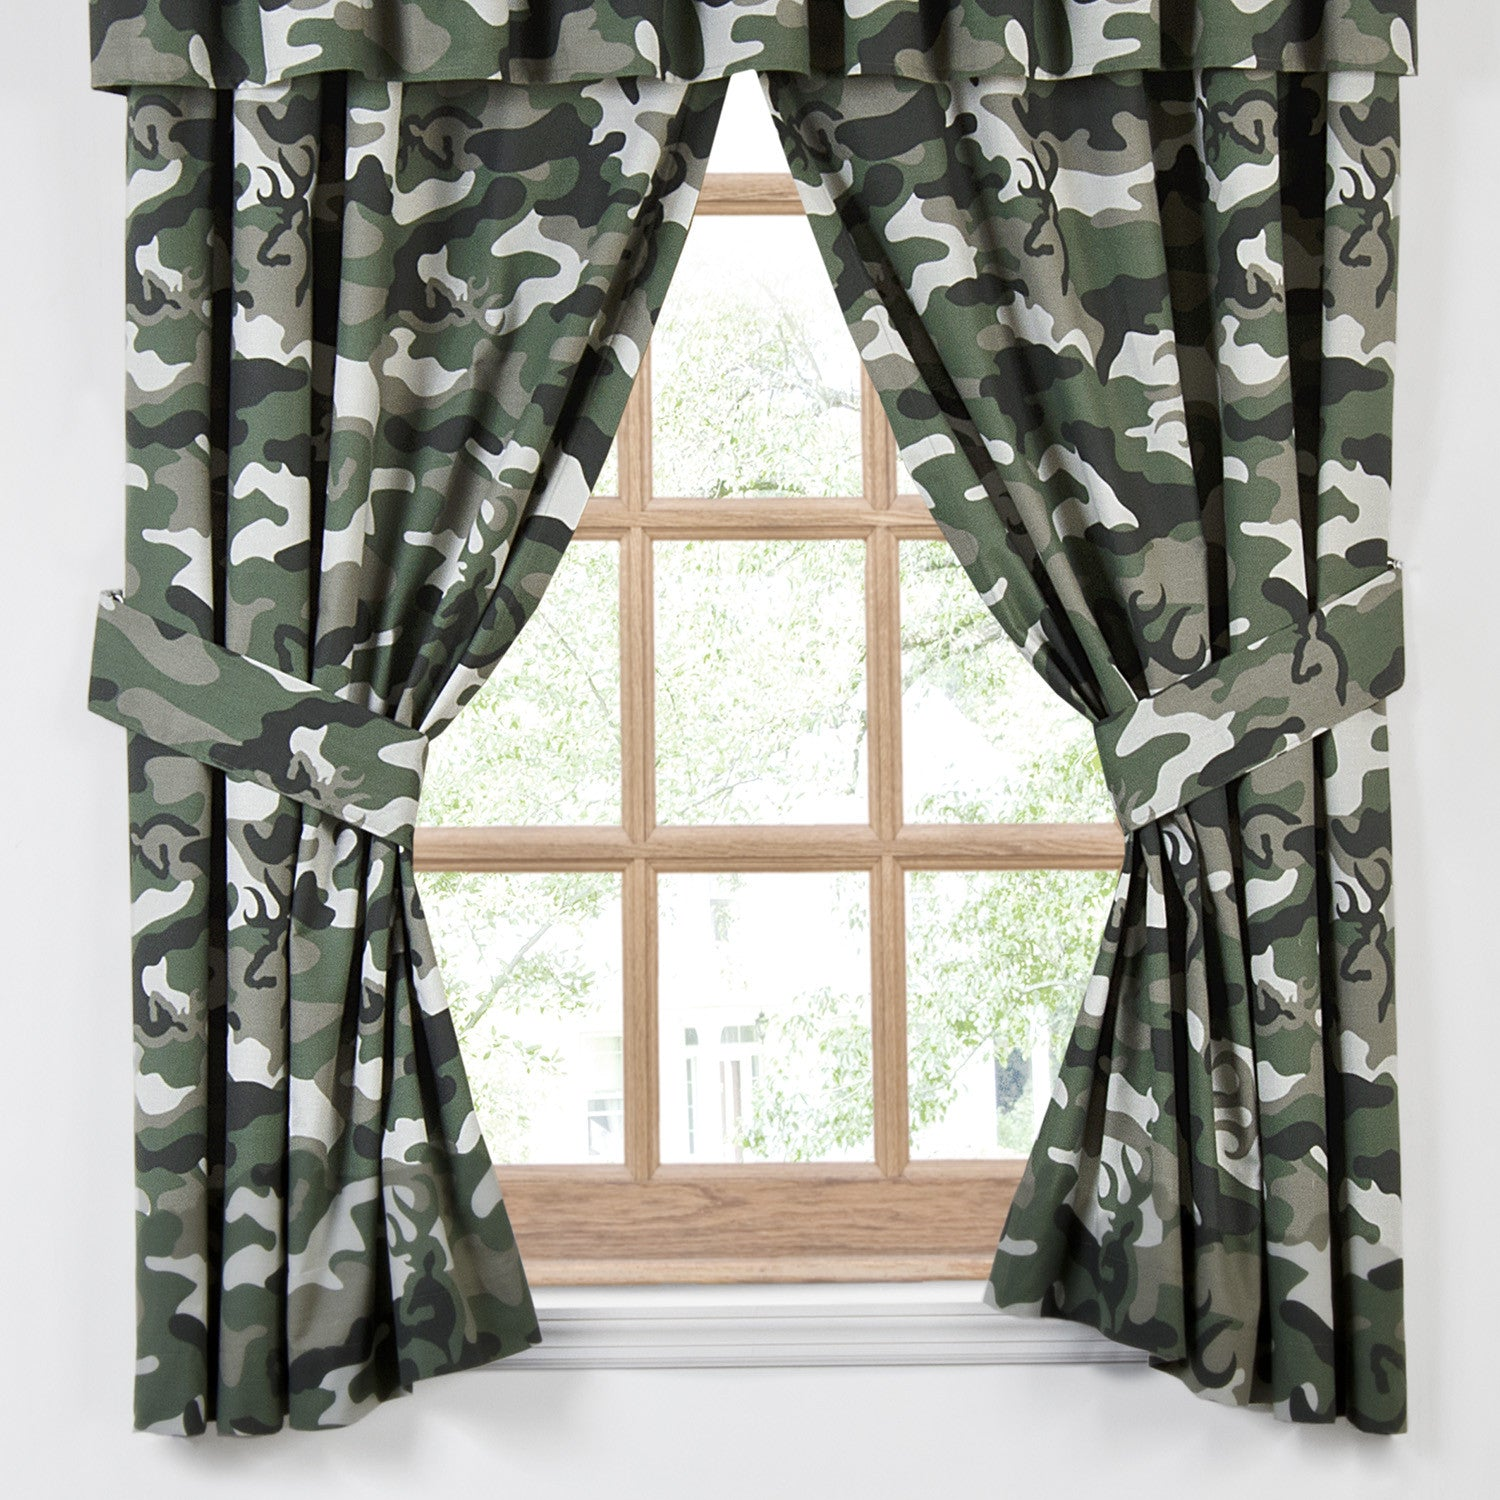 Buckmark Camo Green Rod Pocket Curtains - Back40Trading2